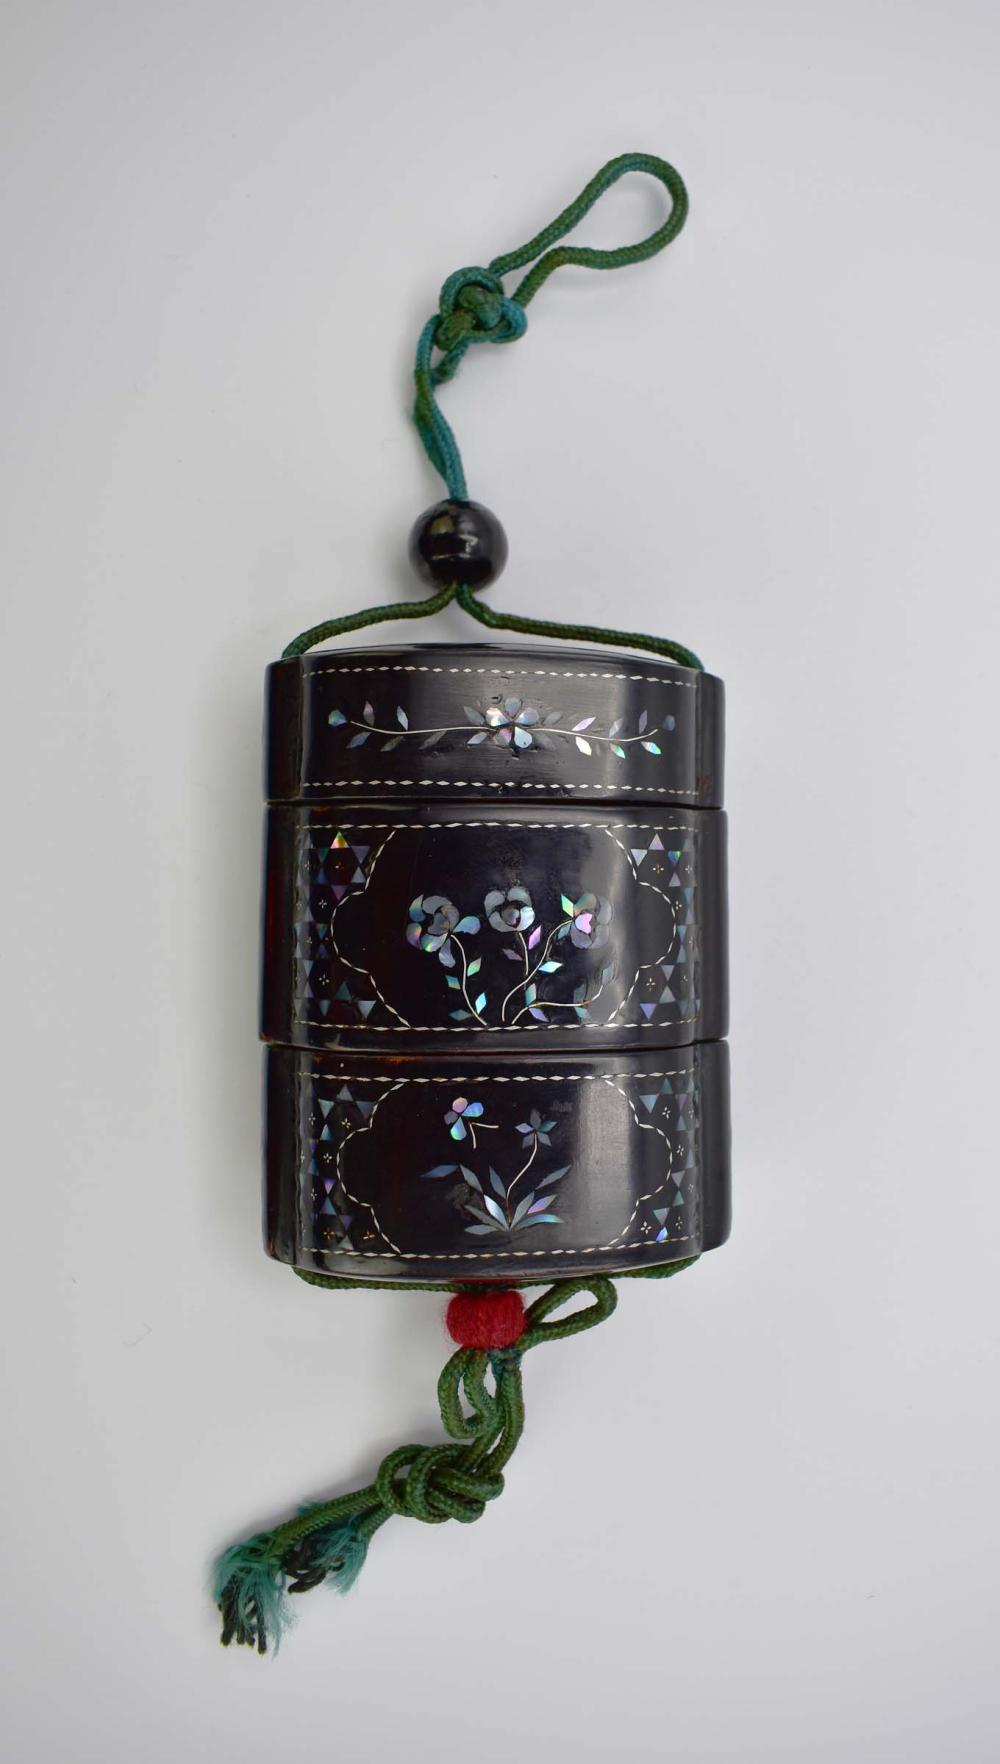 JAPANESE MOTHER-OF-PEARL INLAID BLACK LACQUER INRO